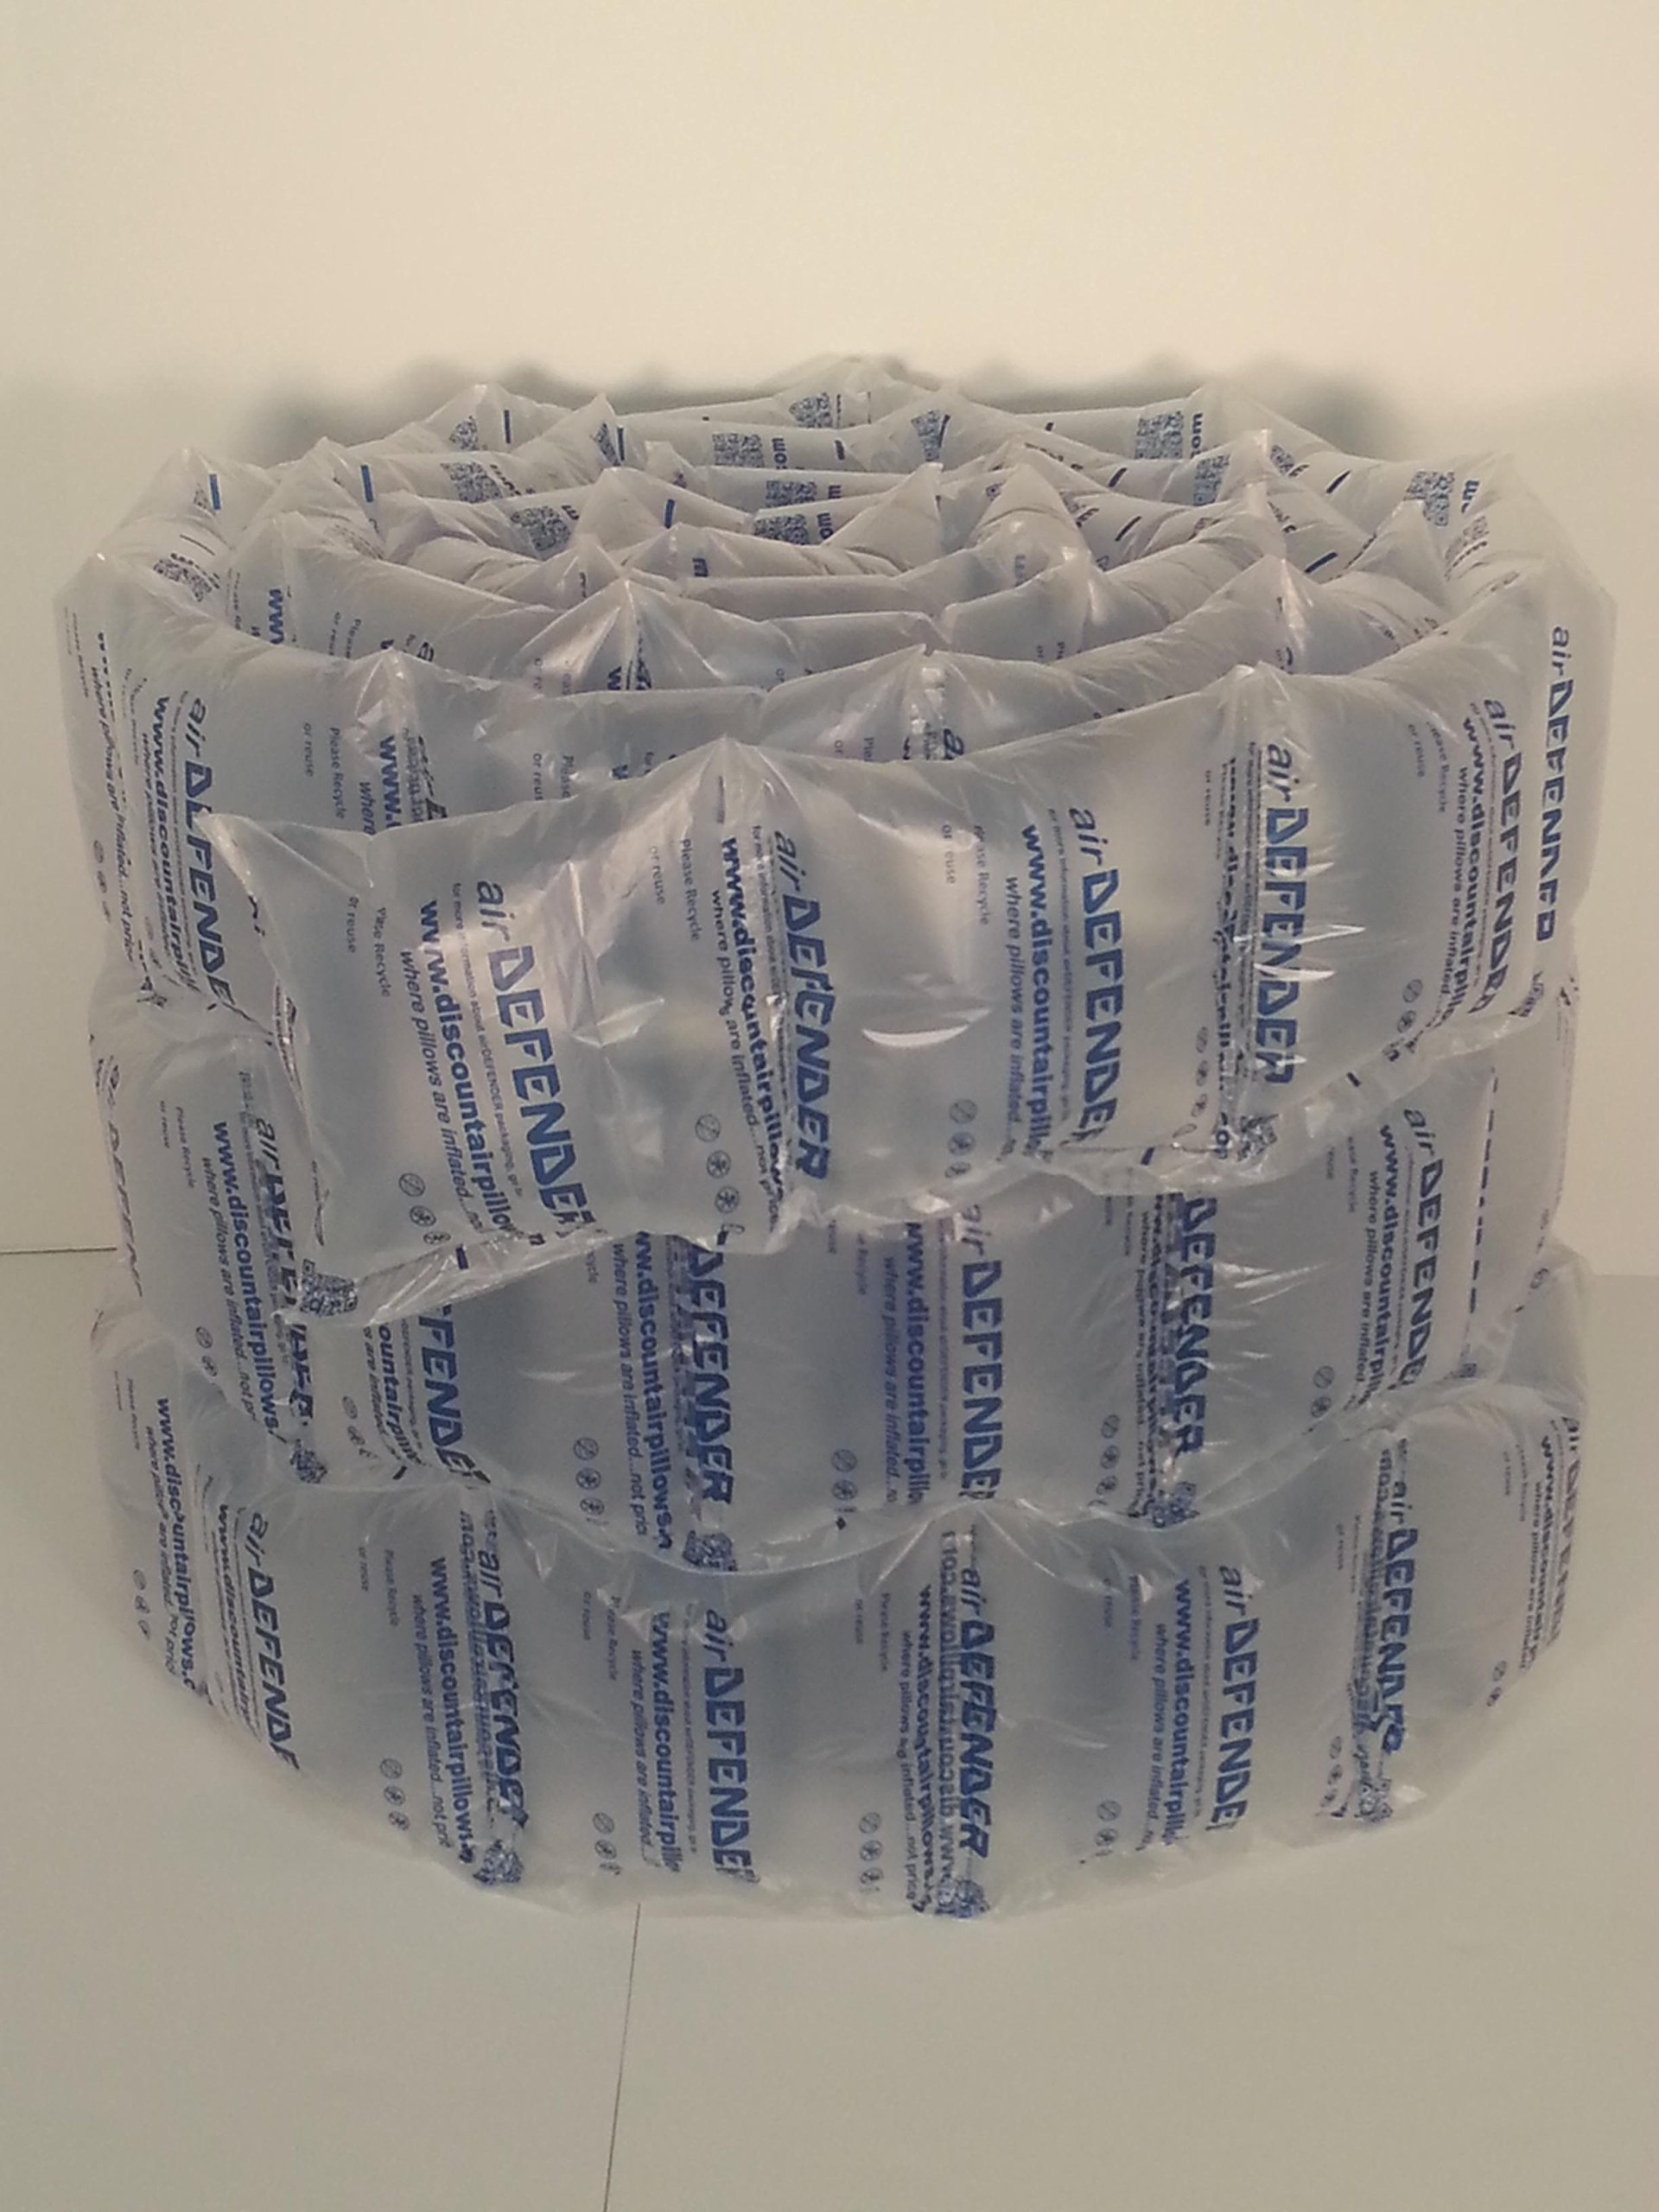 8 x 8 airDEFENDER air pillows 84 quantity 40 gallons 5.33 cubic feet void fill cushioning from Discount Air Pillows